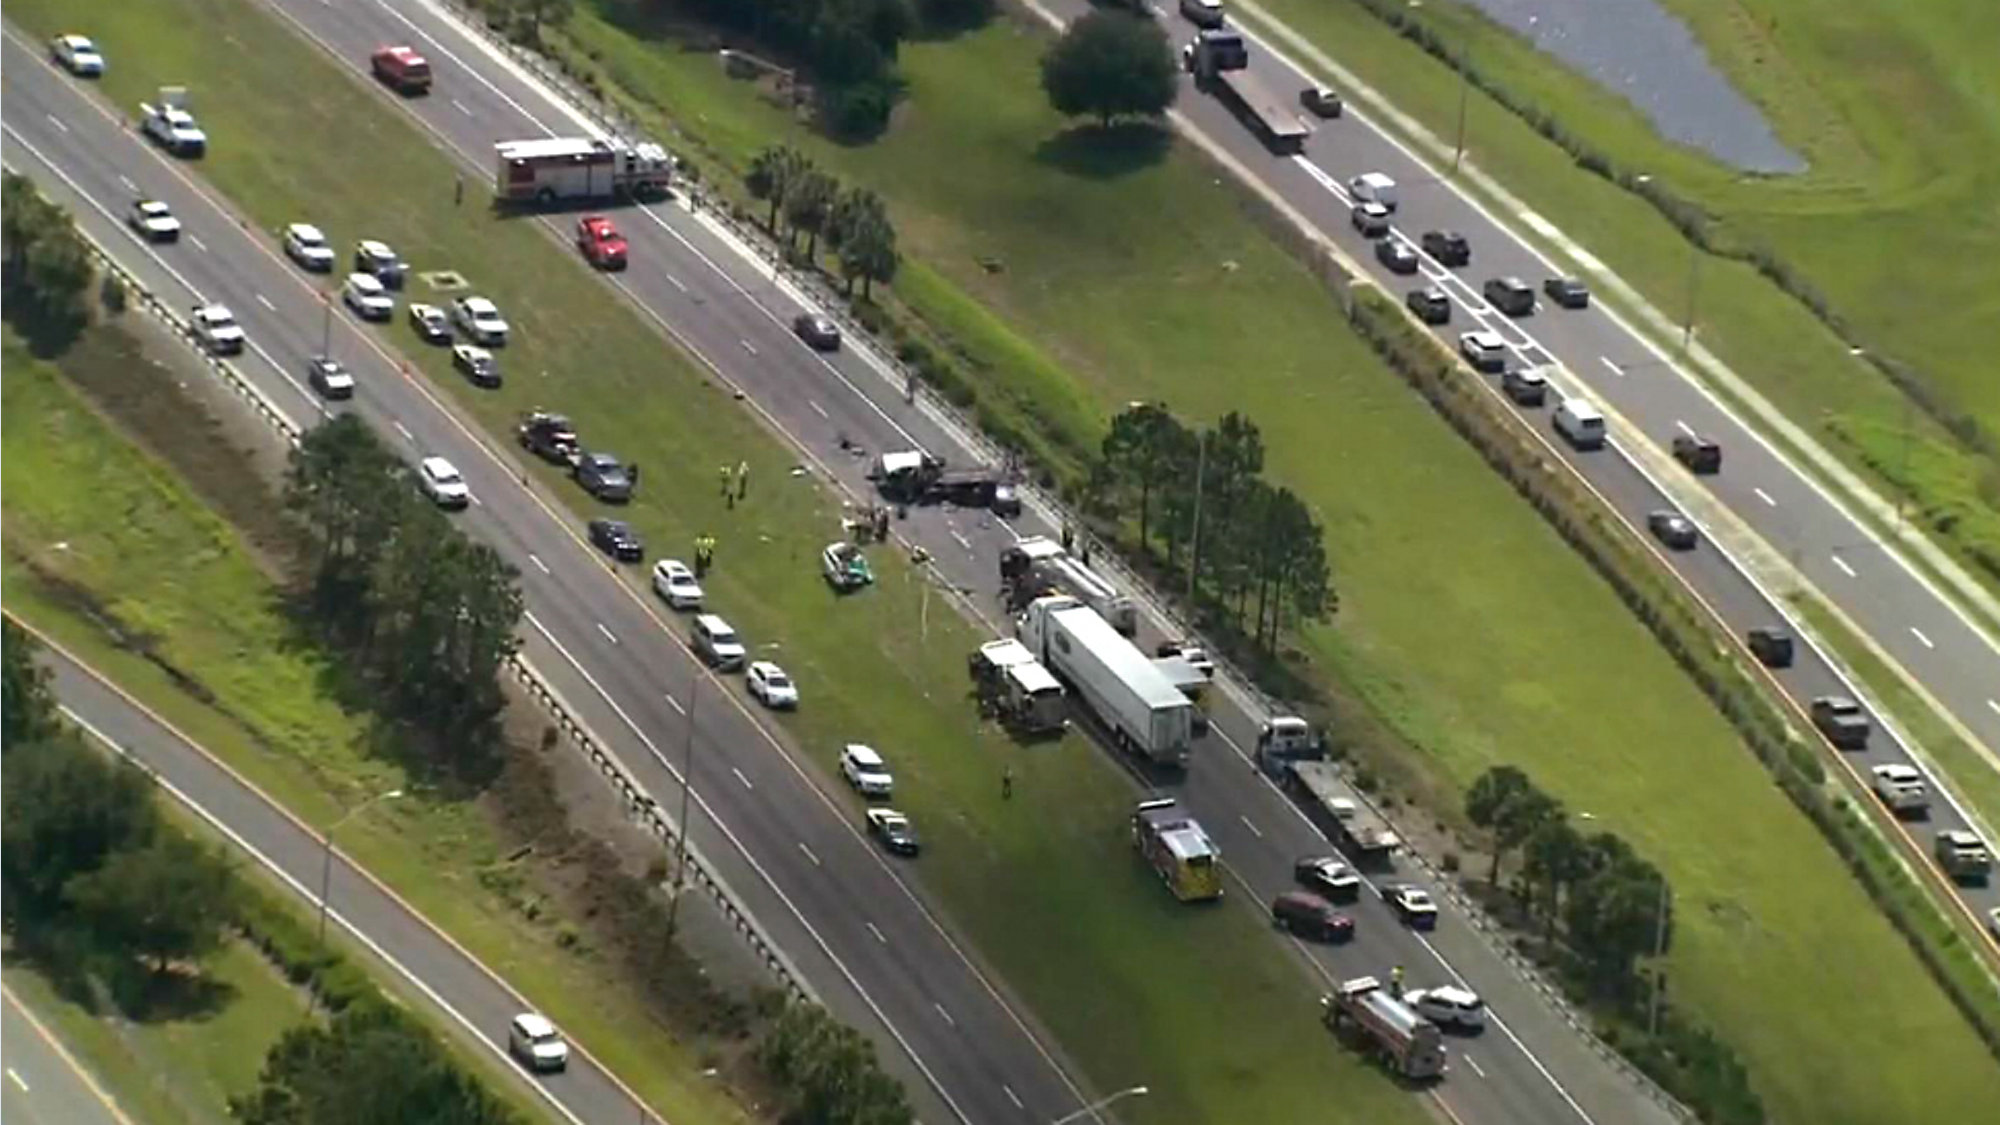 2 Killed in Wrong-Way Crash on SR 429